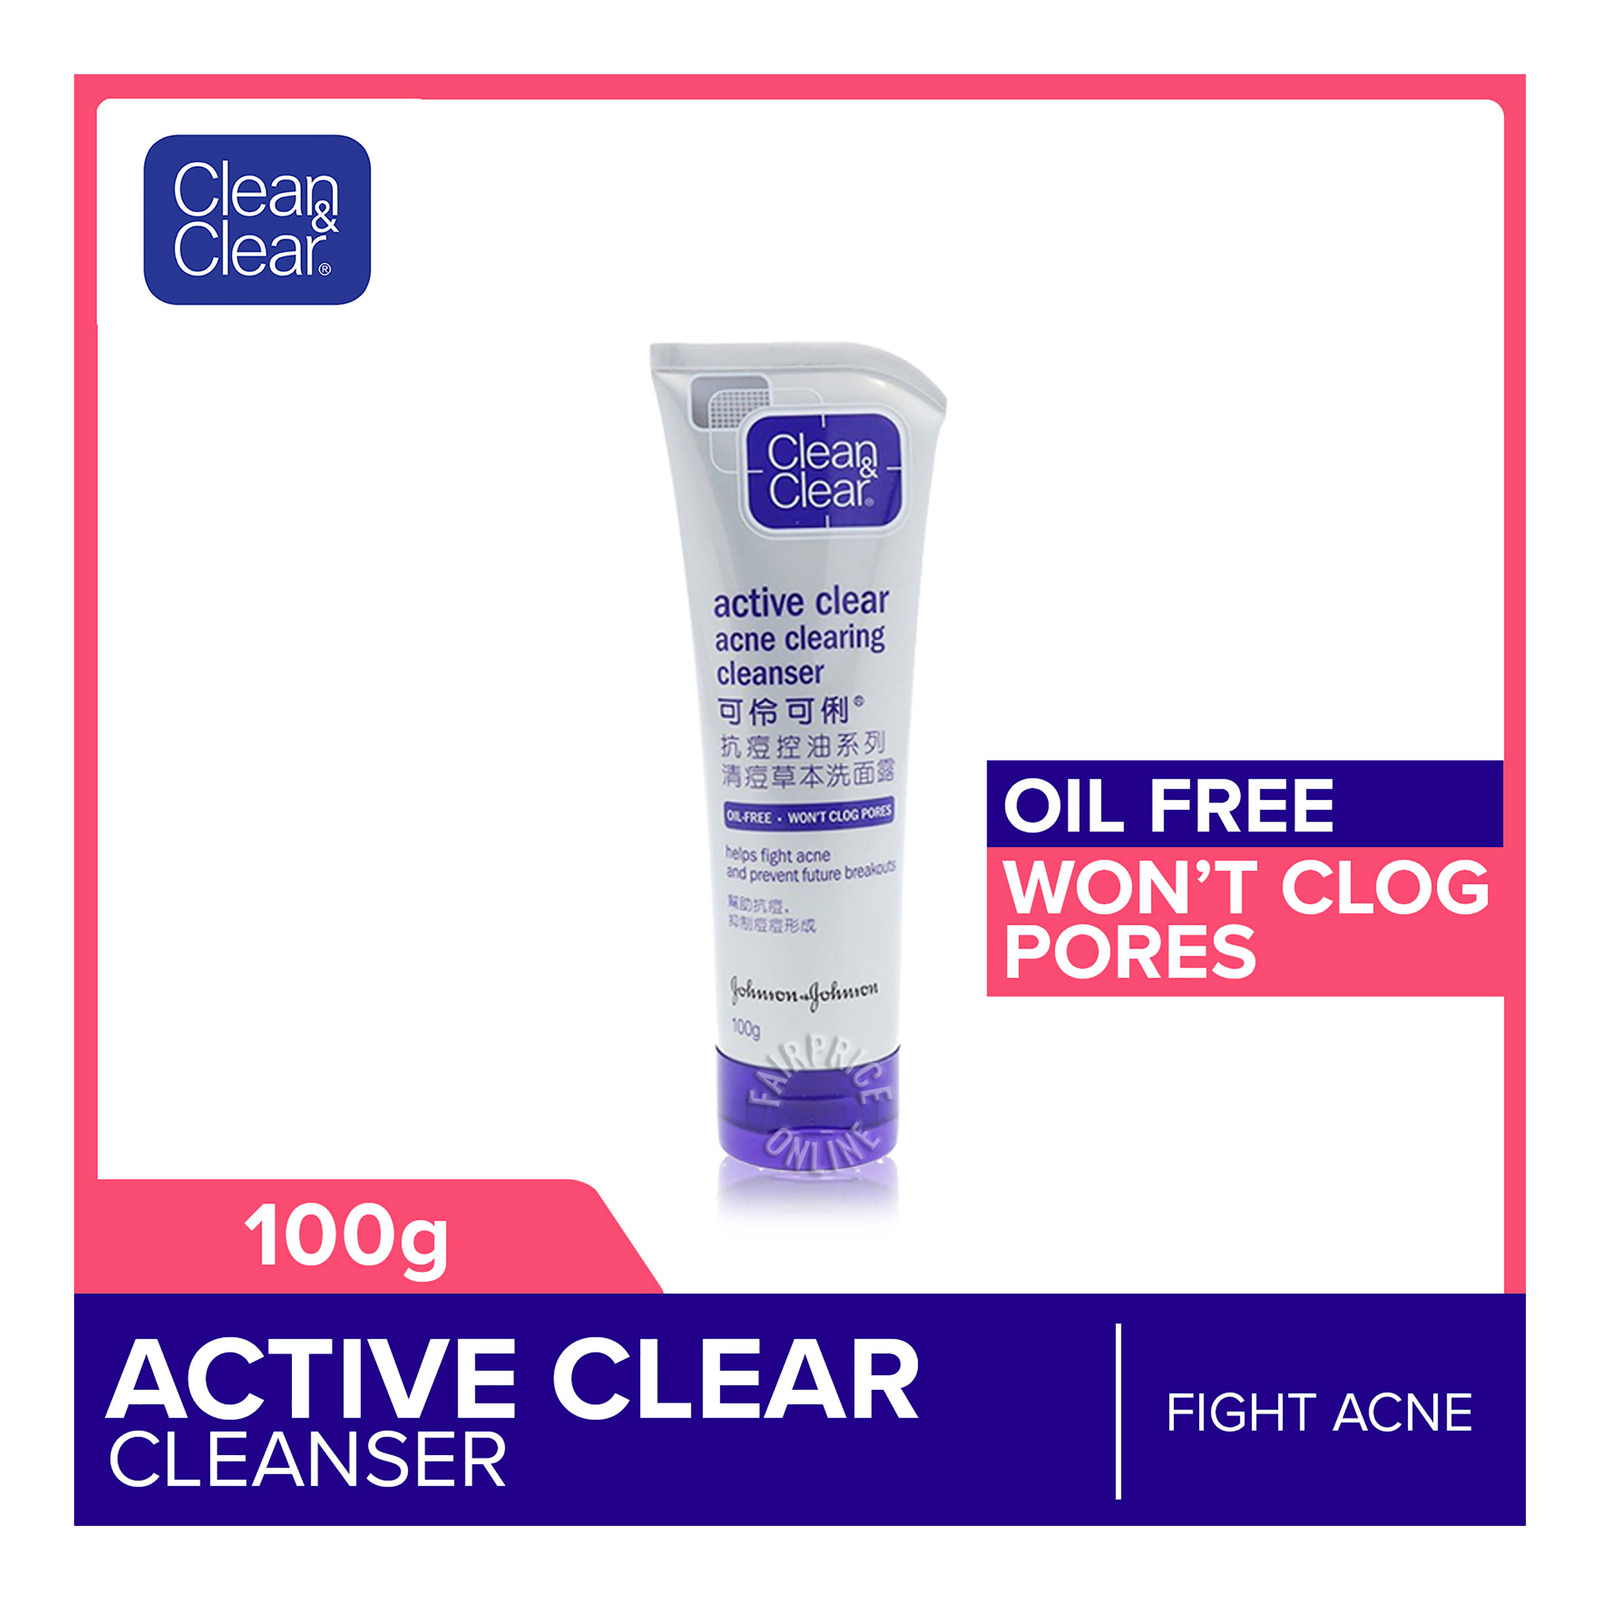 Clean & Clear Active Clear Cleanser - Acne Clearing